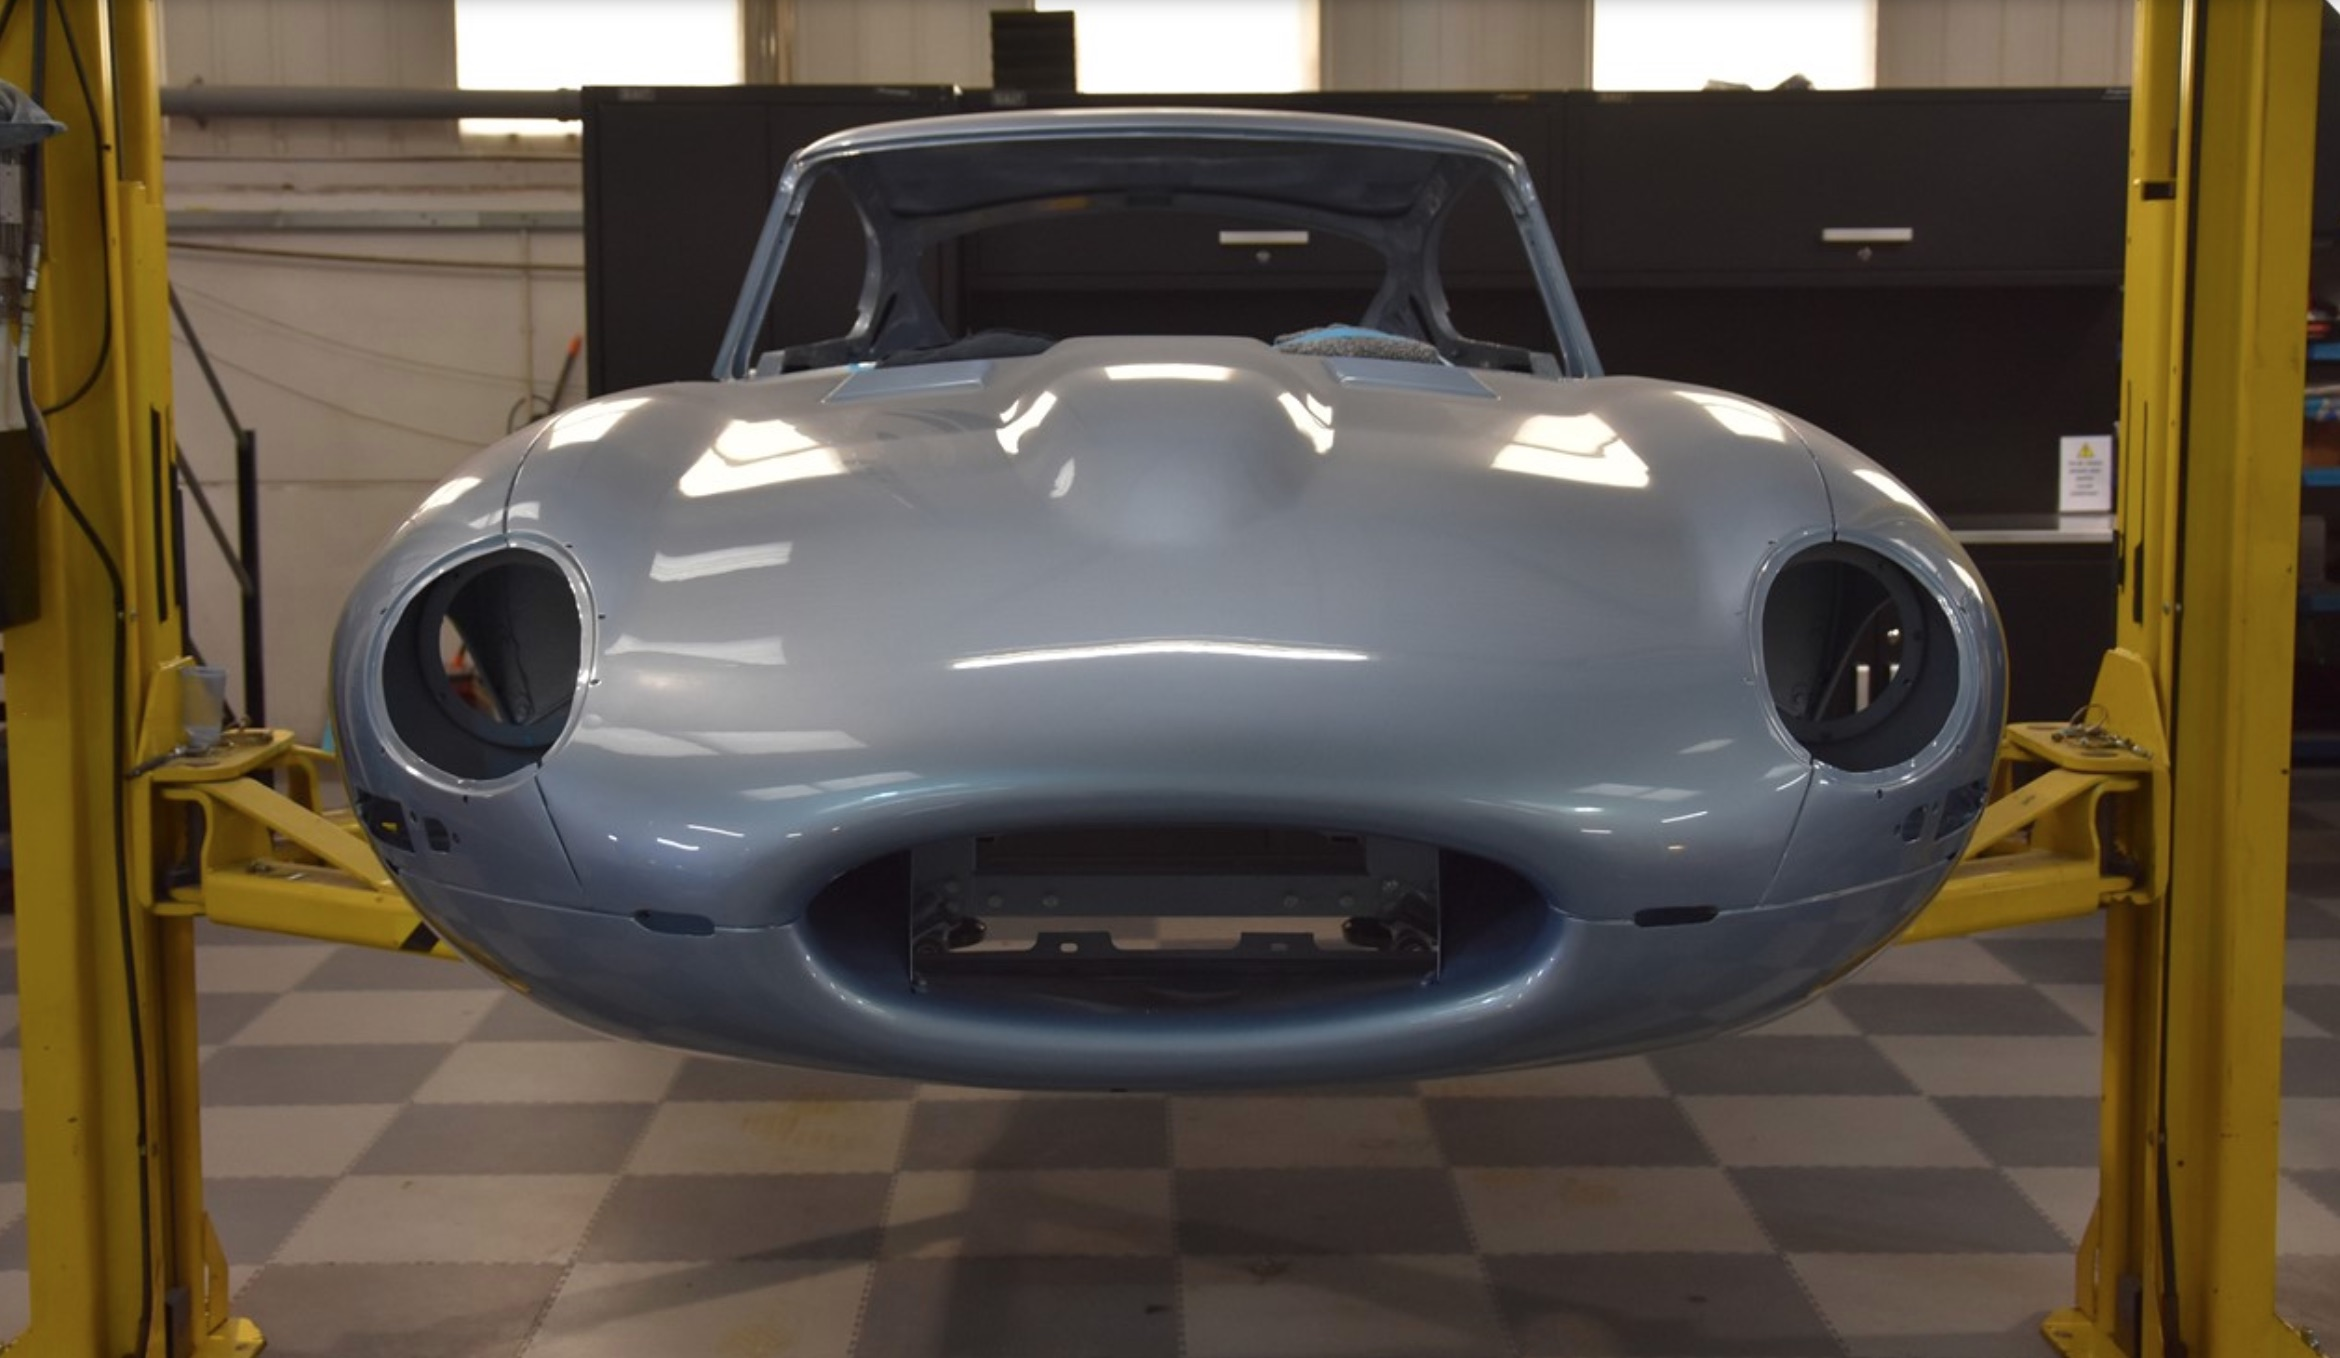 Series 1 Jaguar E-Type restored after being abandoned for 41 years